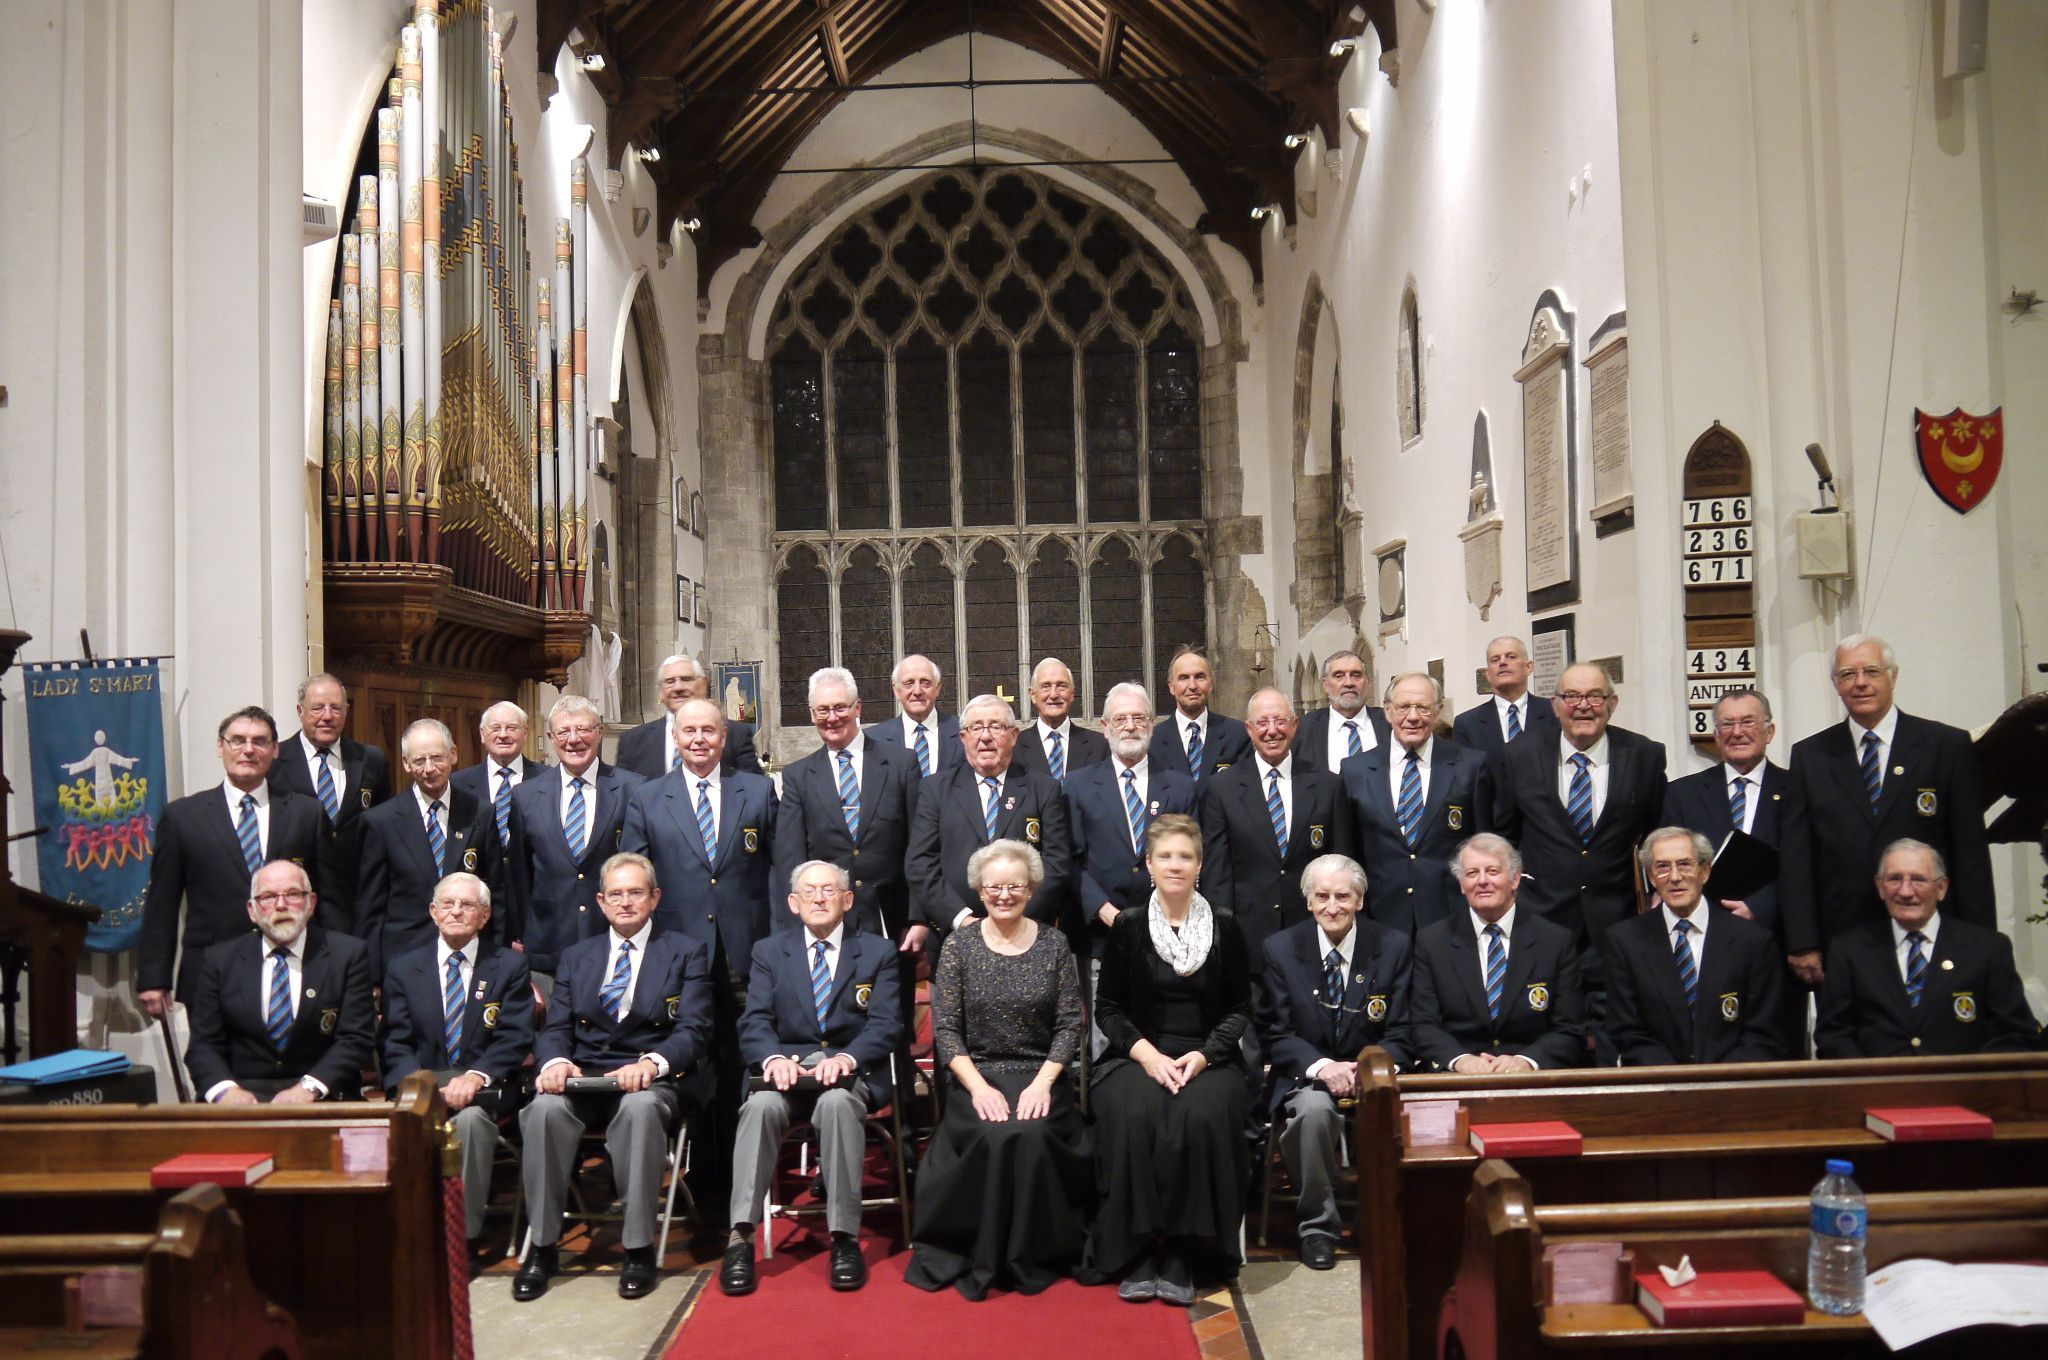 The Casterbridge Male Voice Choir